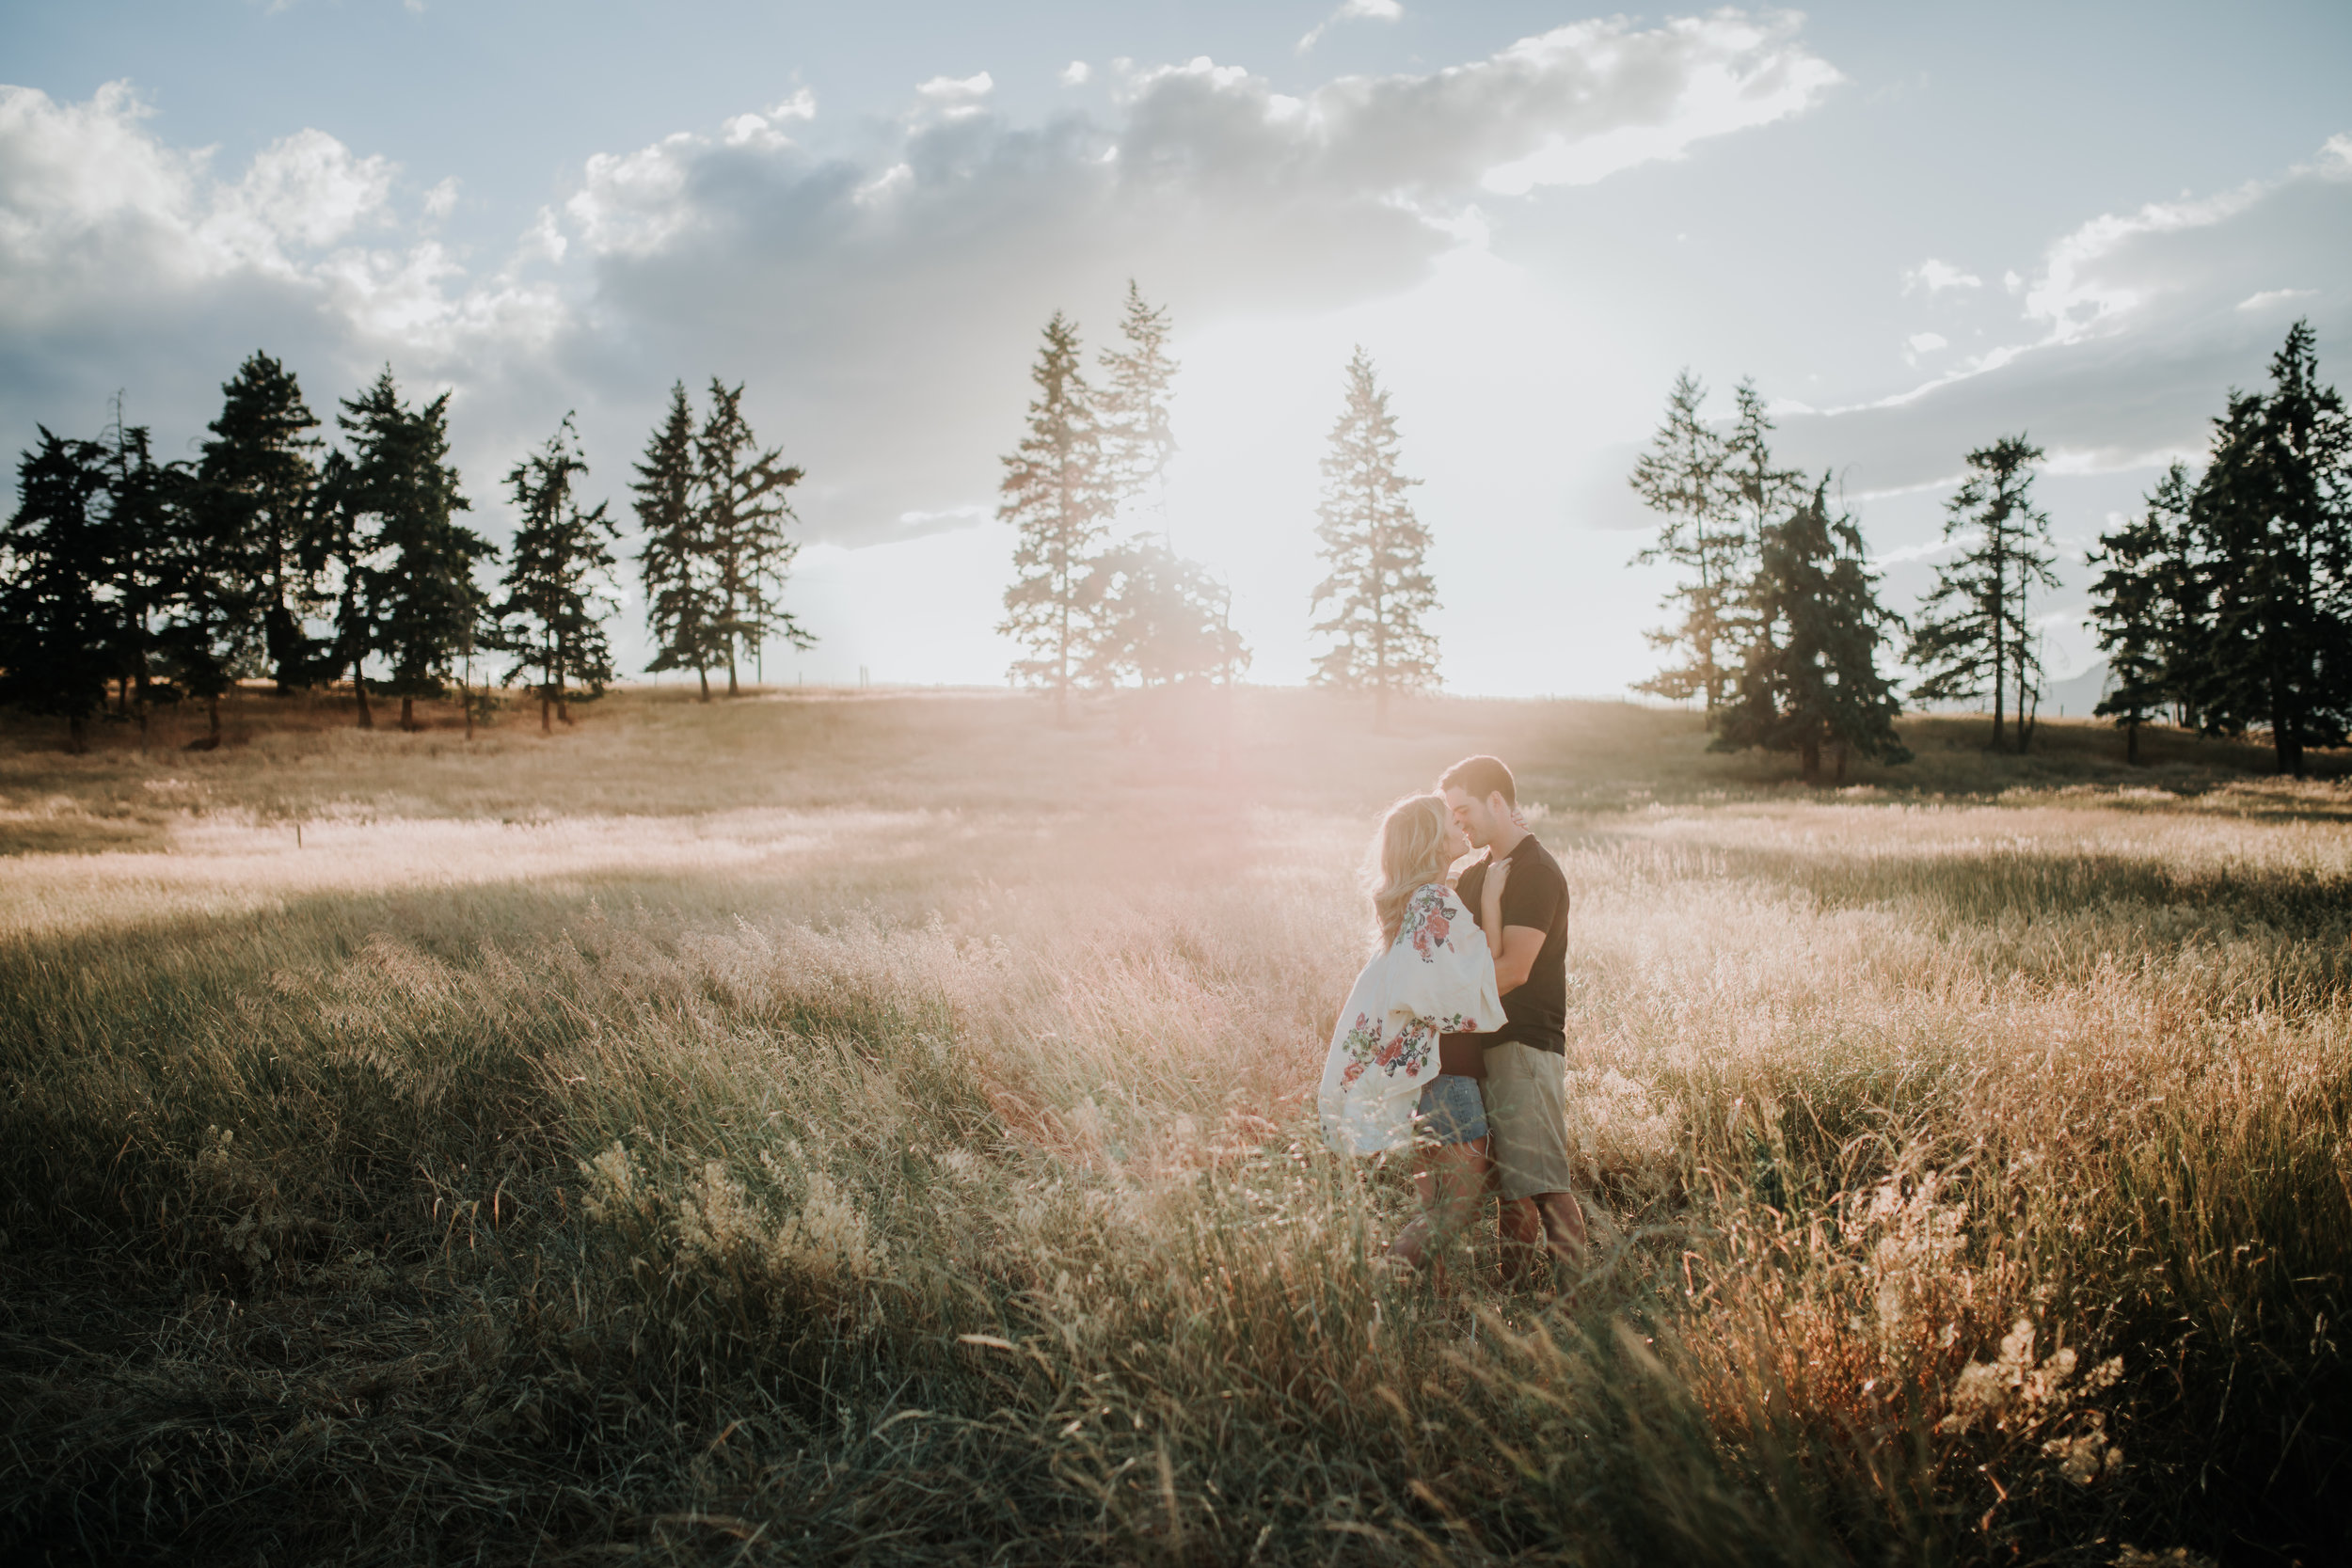 $350// One hour photo shoot// One or two locations//100+ edited images delivered in an online gallery//Half price discount offered if you have your wedding booked with Honey Deer Photography -